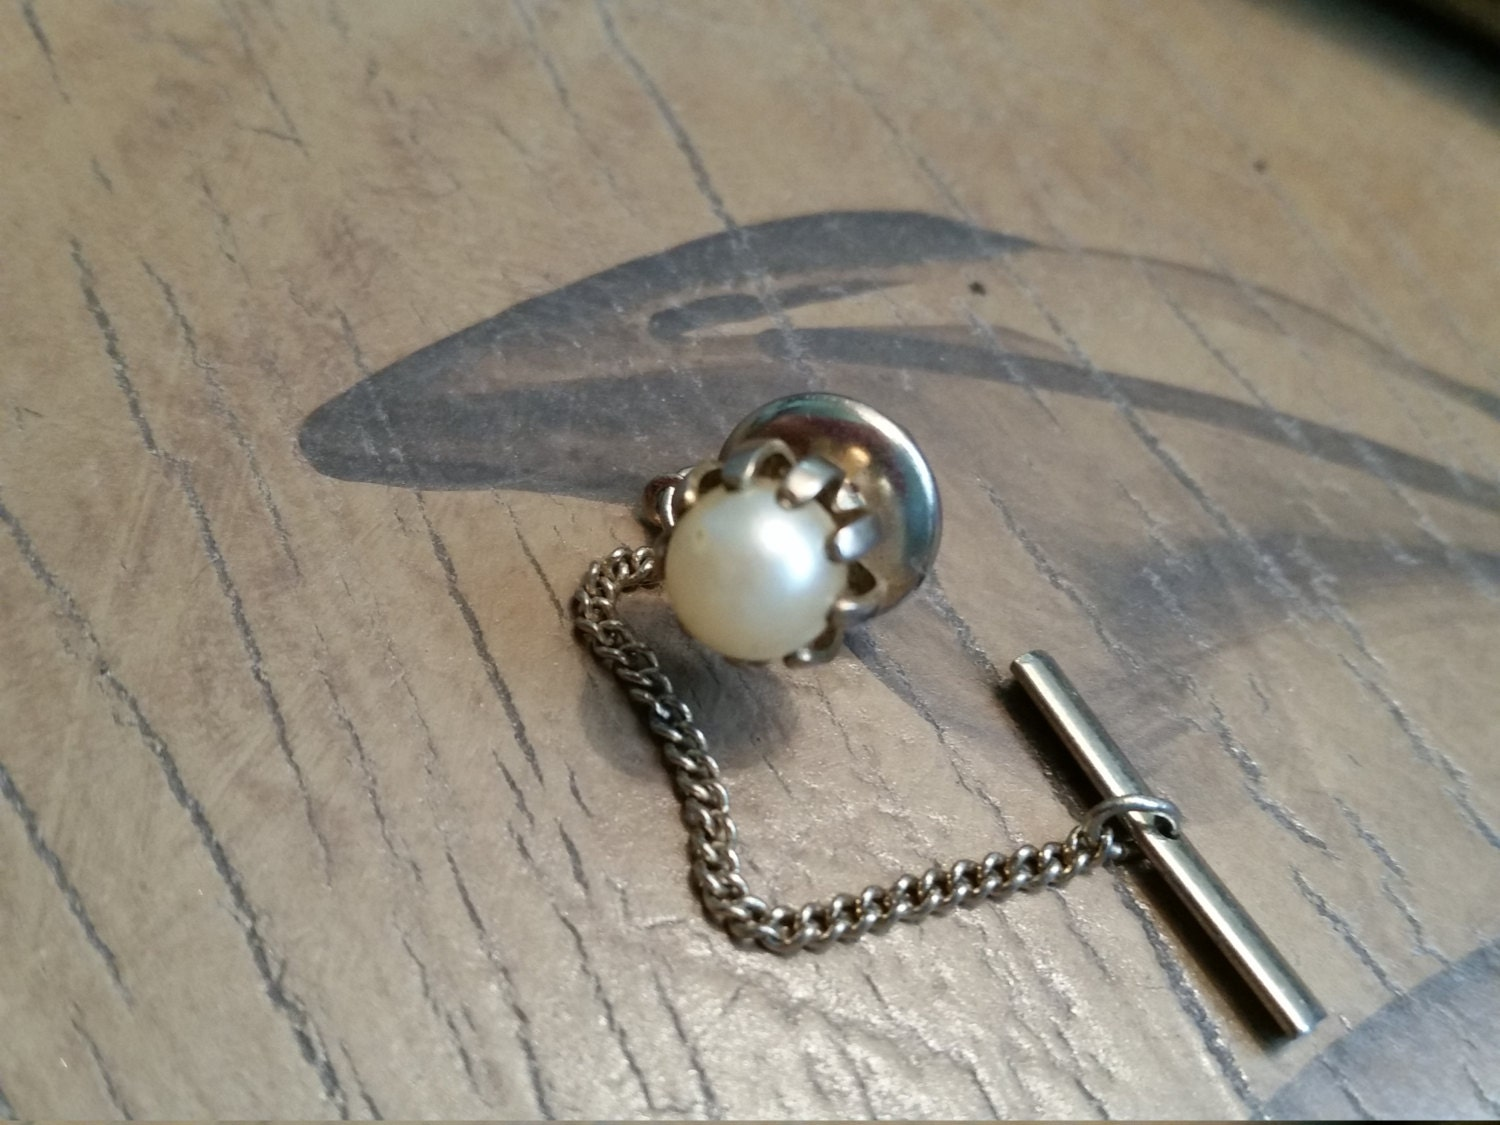 single women over 50 in pearl What pearl necklace size is right for her price and gives them the best chance to appreciate in value over what size is right for her american pearl vs.